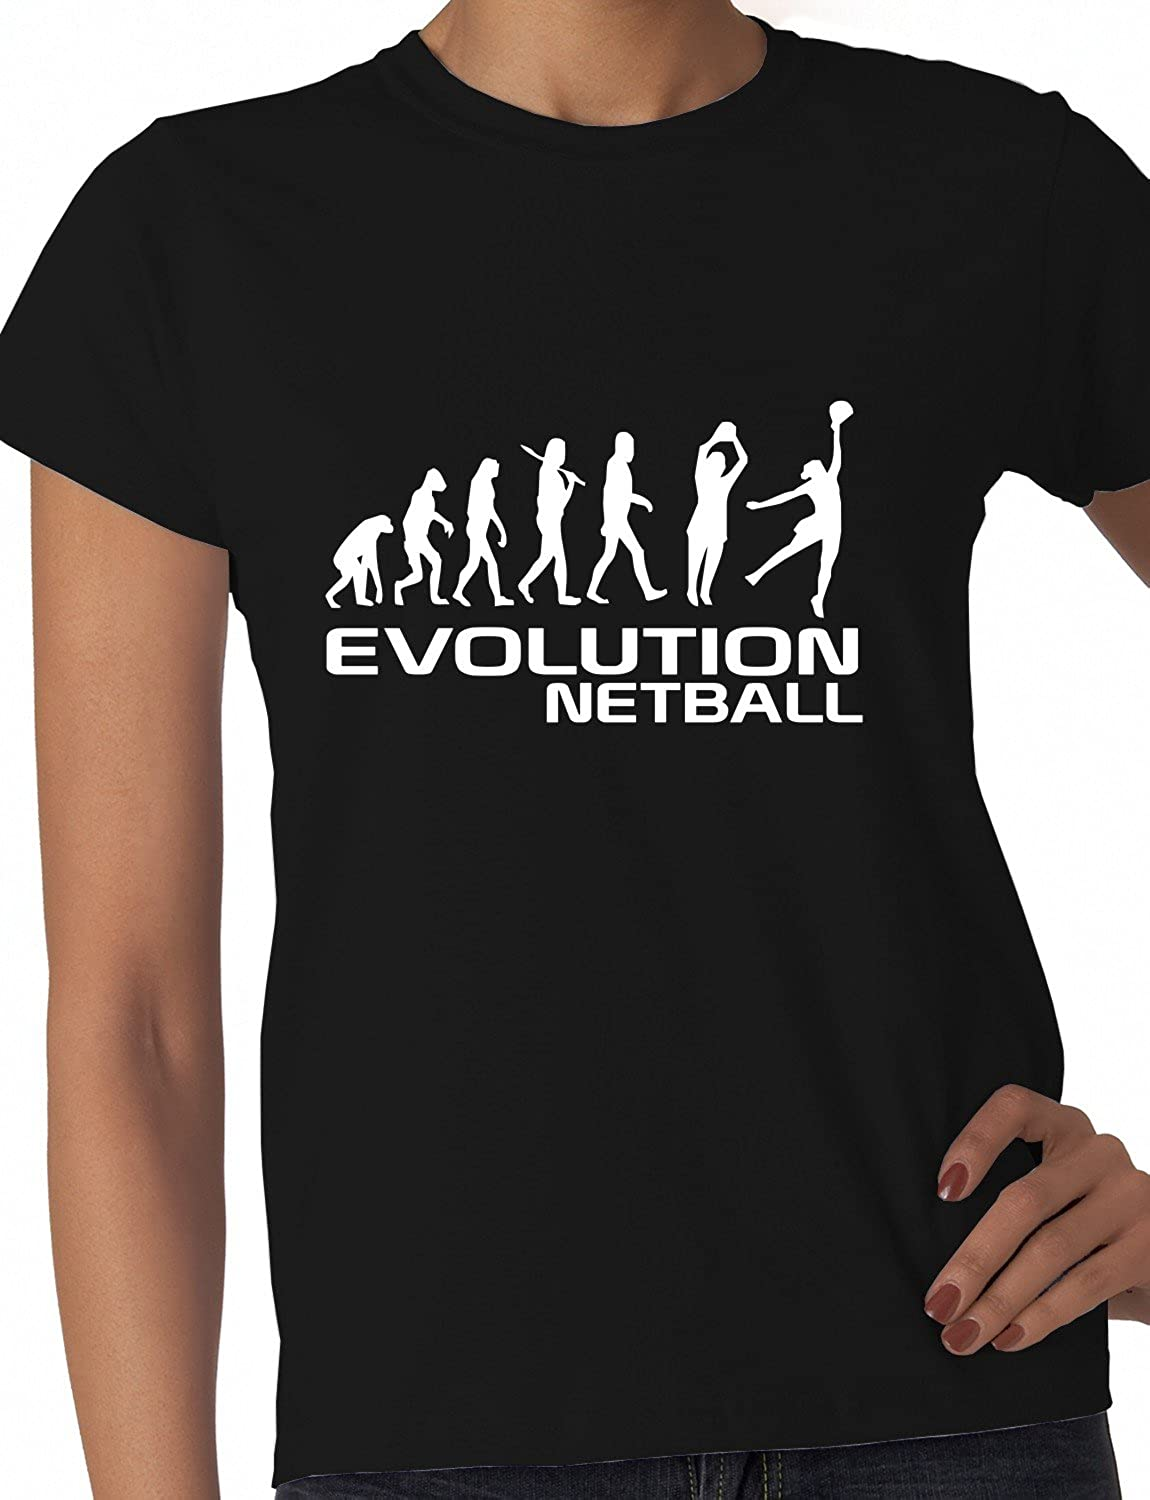 Design t shirt netball - Evolution Of Netball Funny Ladies T Shirt Size S Xxl Amazon Co Uk Clothing